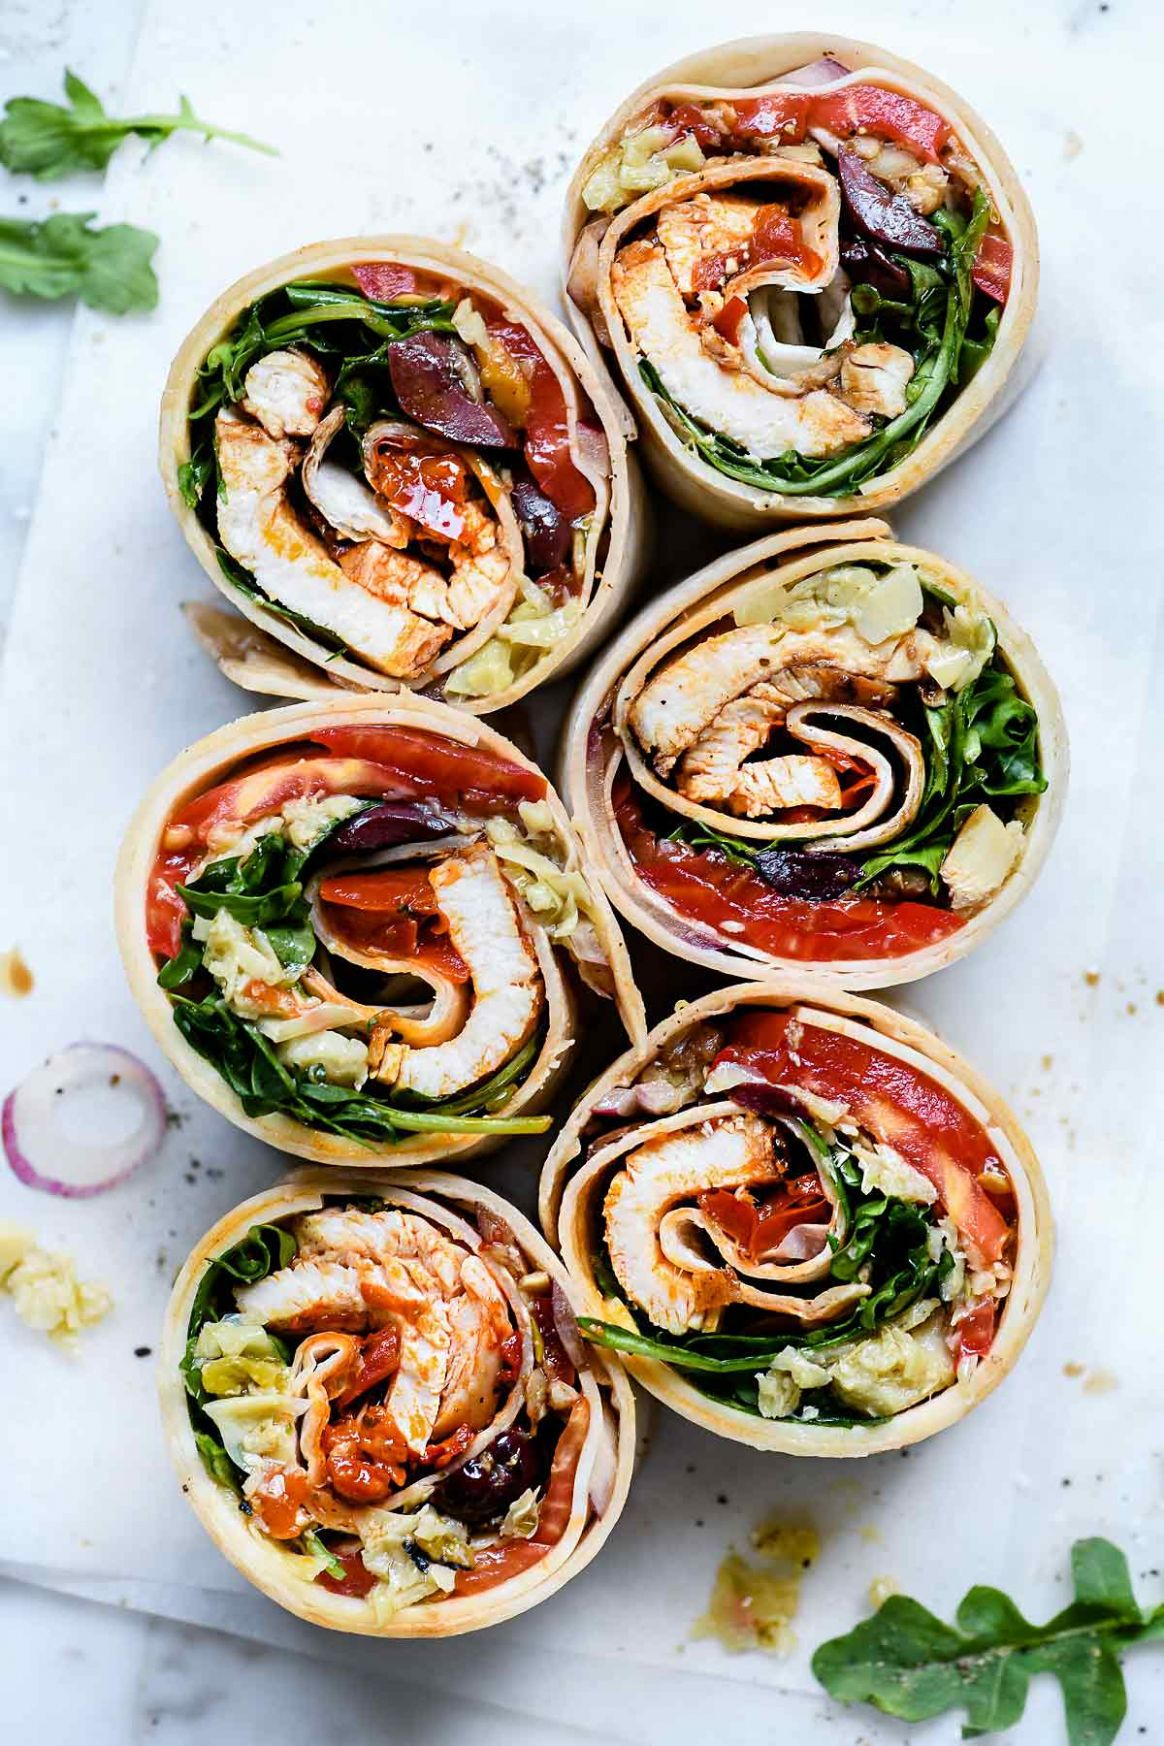 Italian Chicken Wrap - Recipes Sandwich Wraps